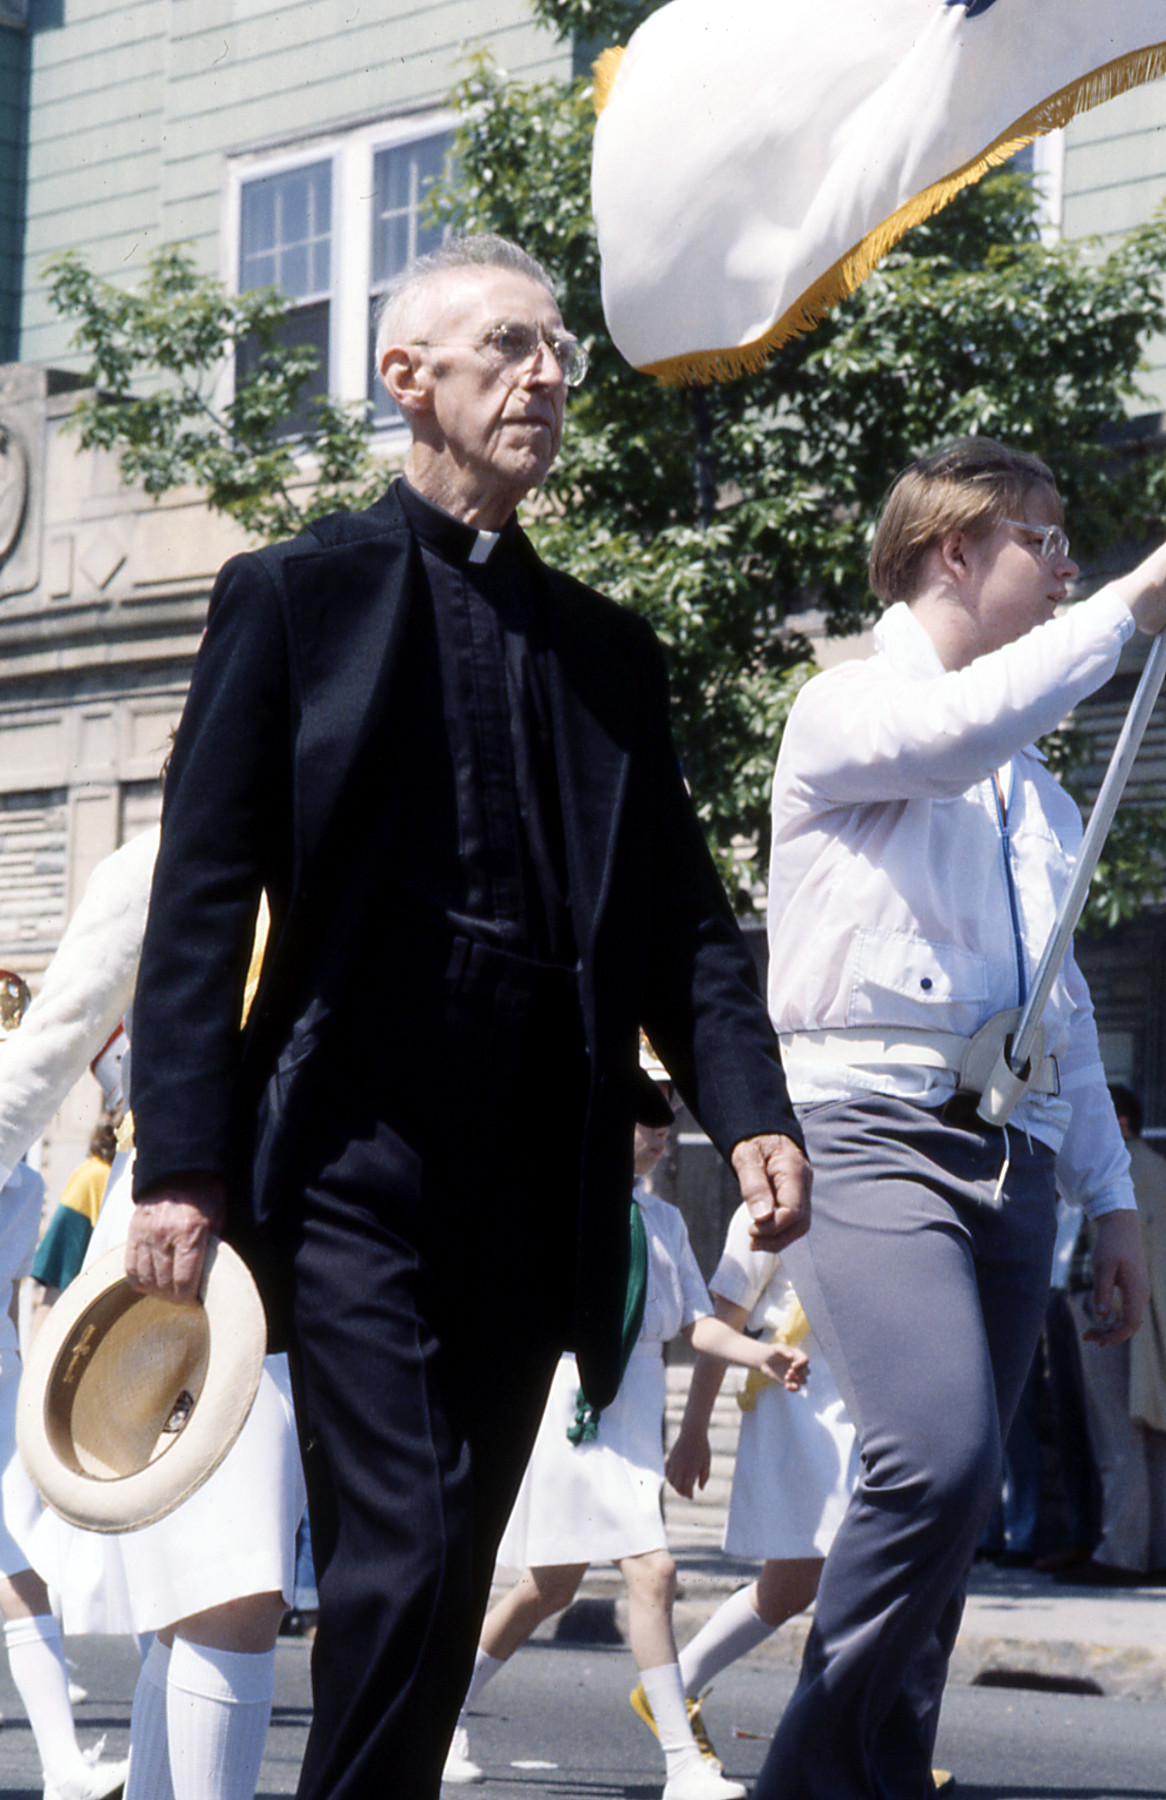 New Hampshire marching priest